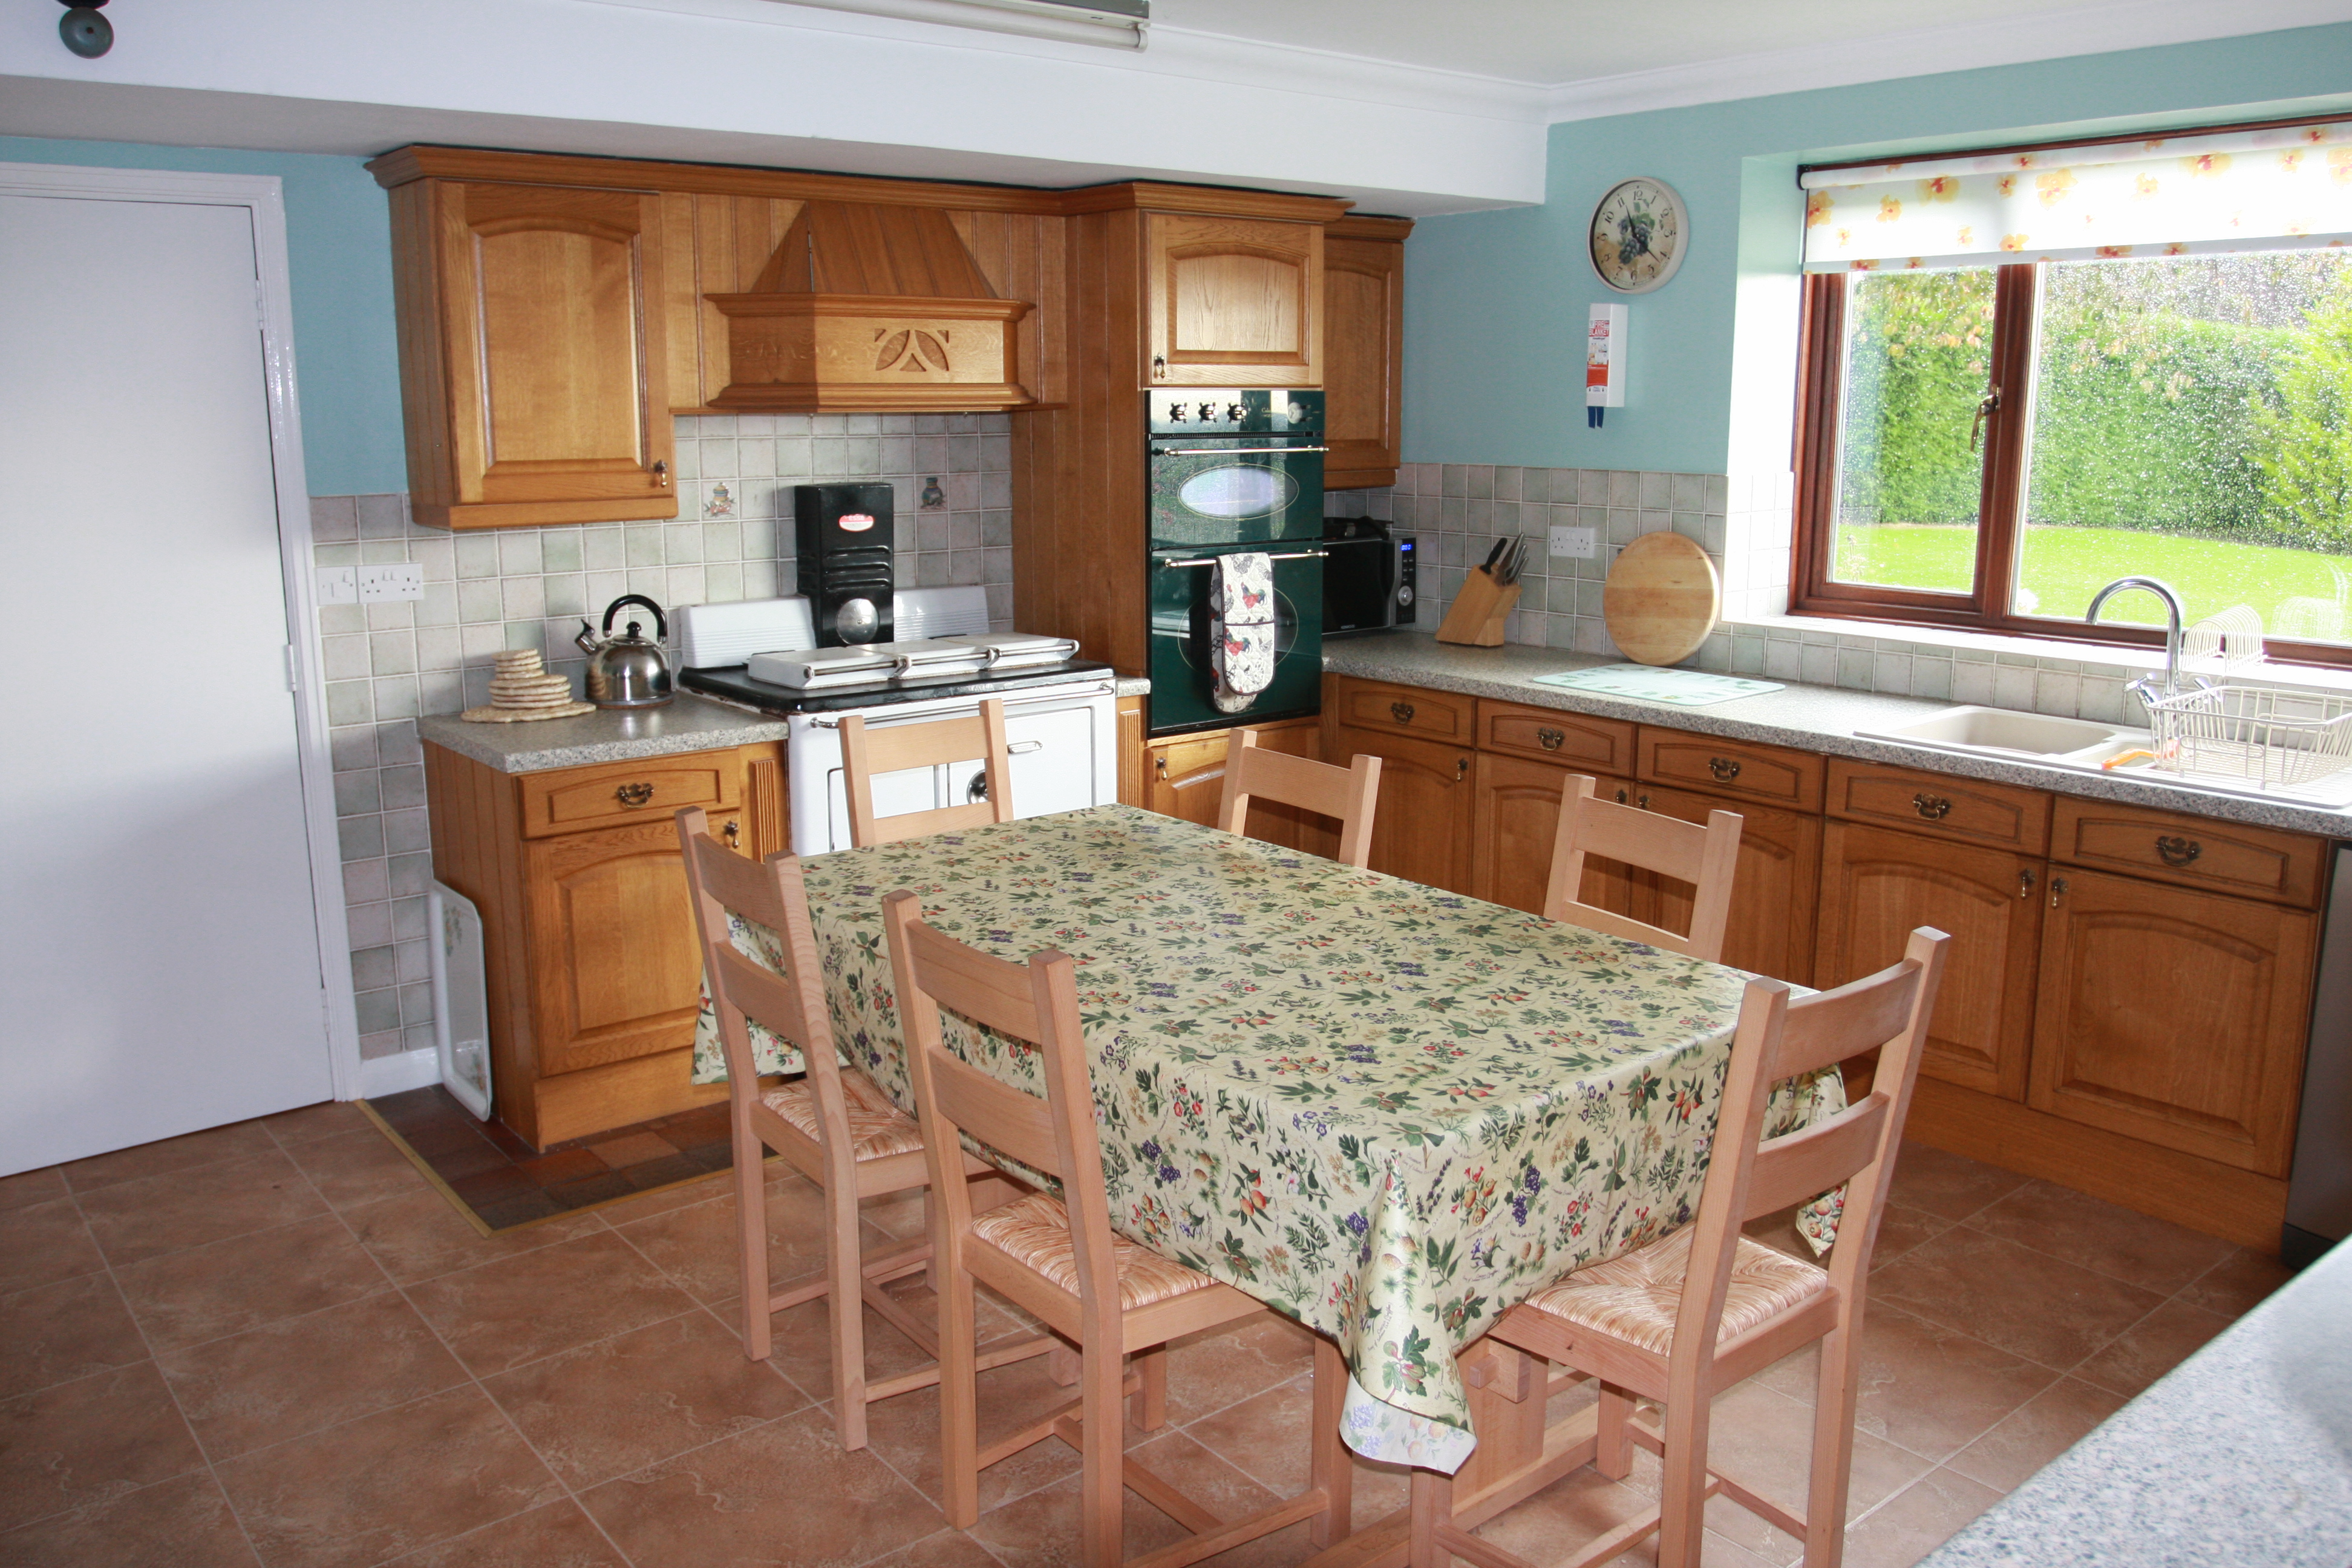 Ewelands House - 6 bedrooms - sleeps 12